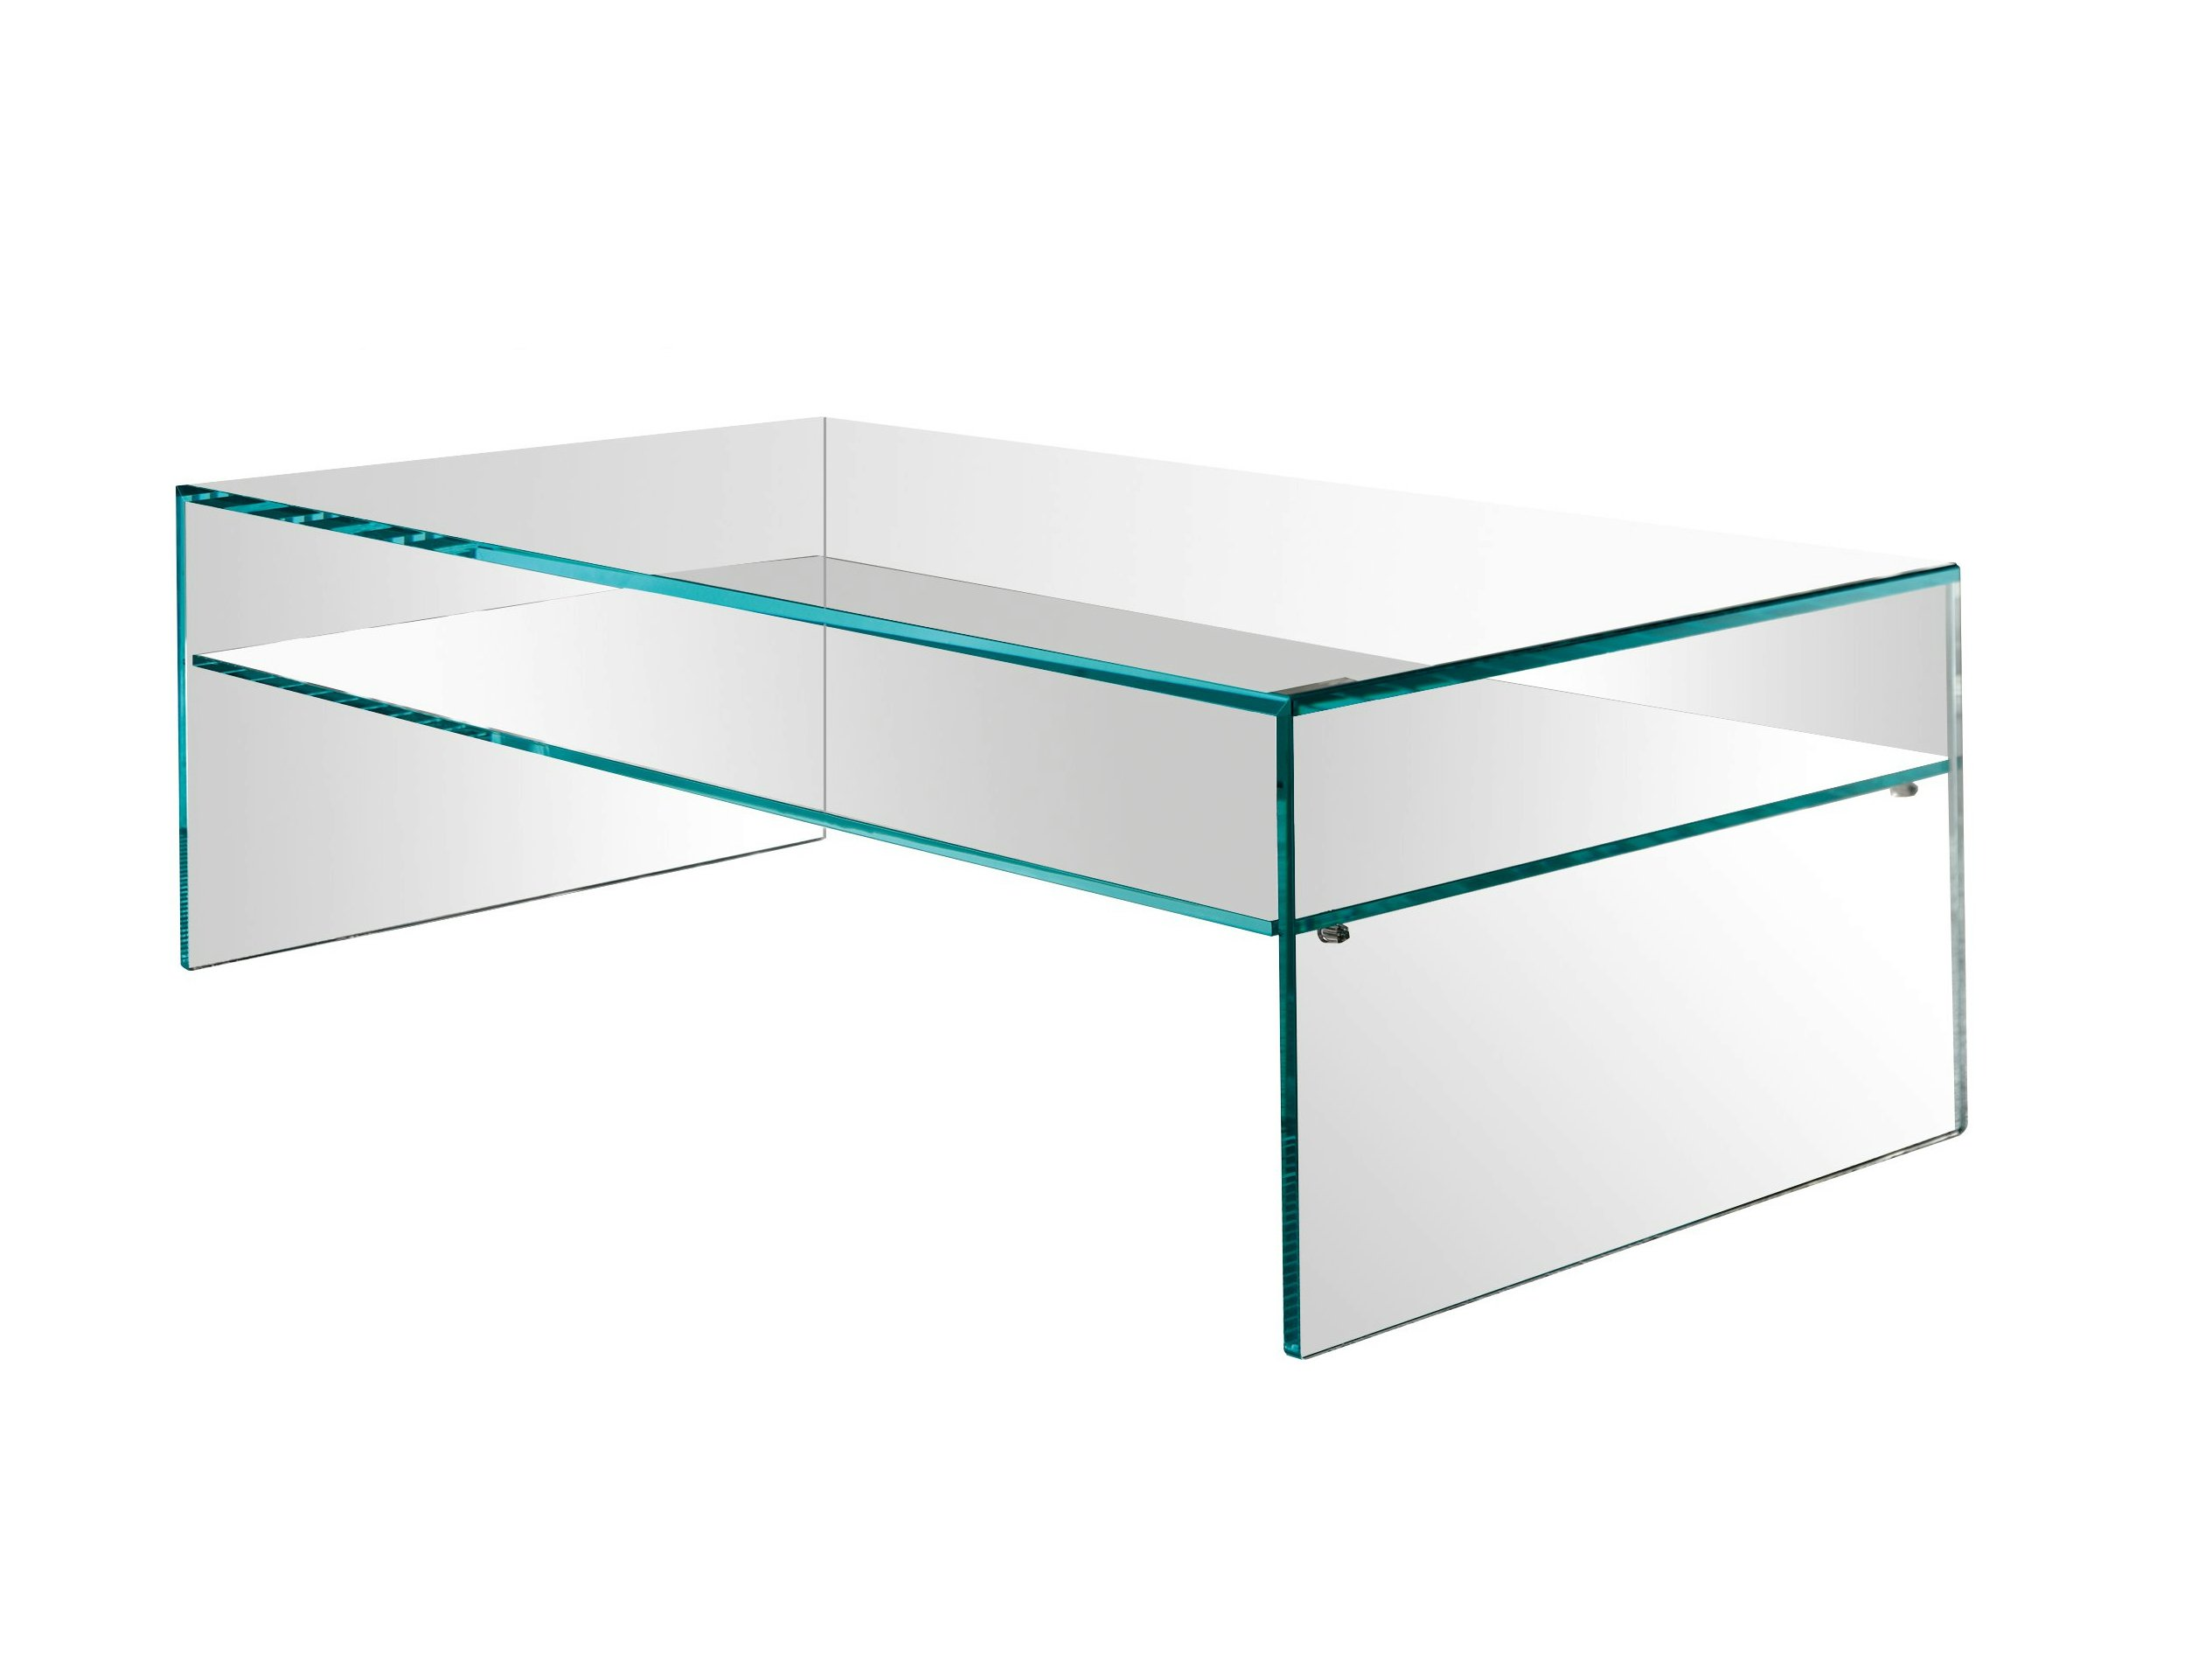 Table basse rectangulaire en verre fratina due by t d tonelli design - Table basse rectangulaire en verre ...